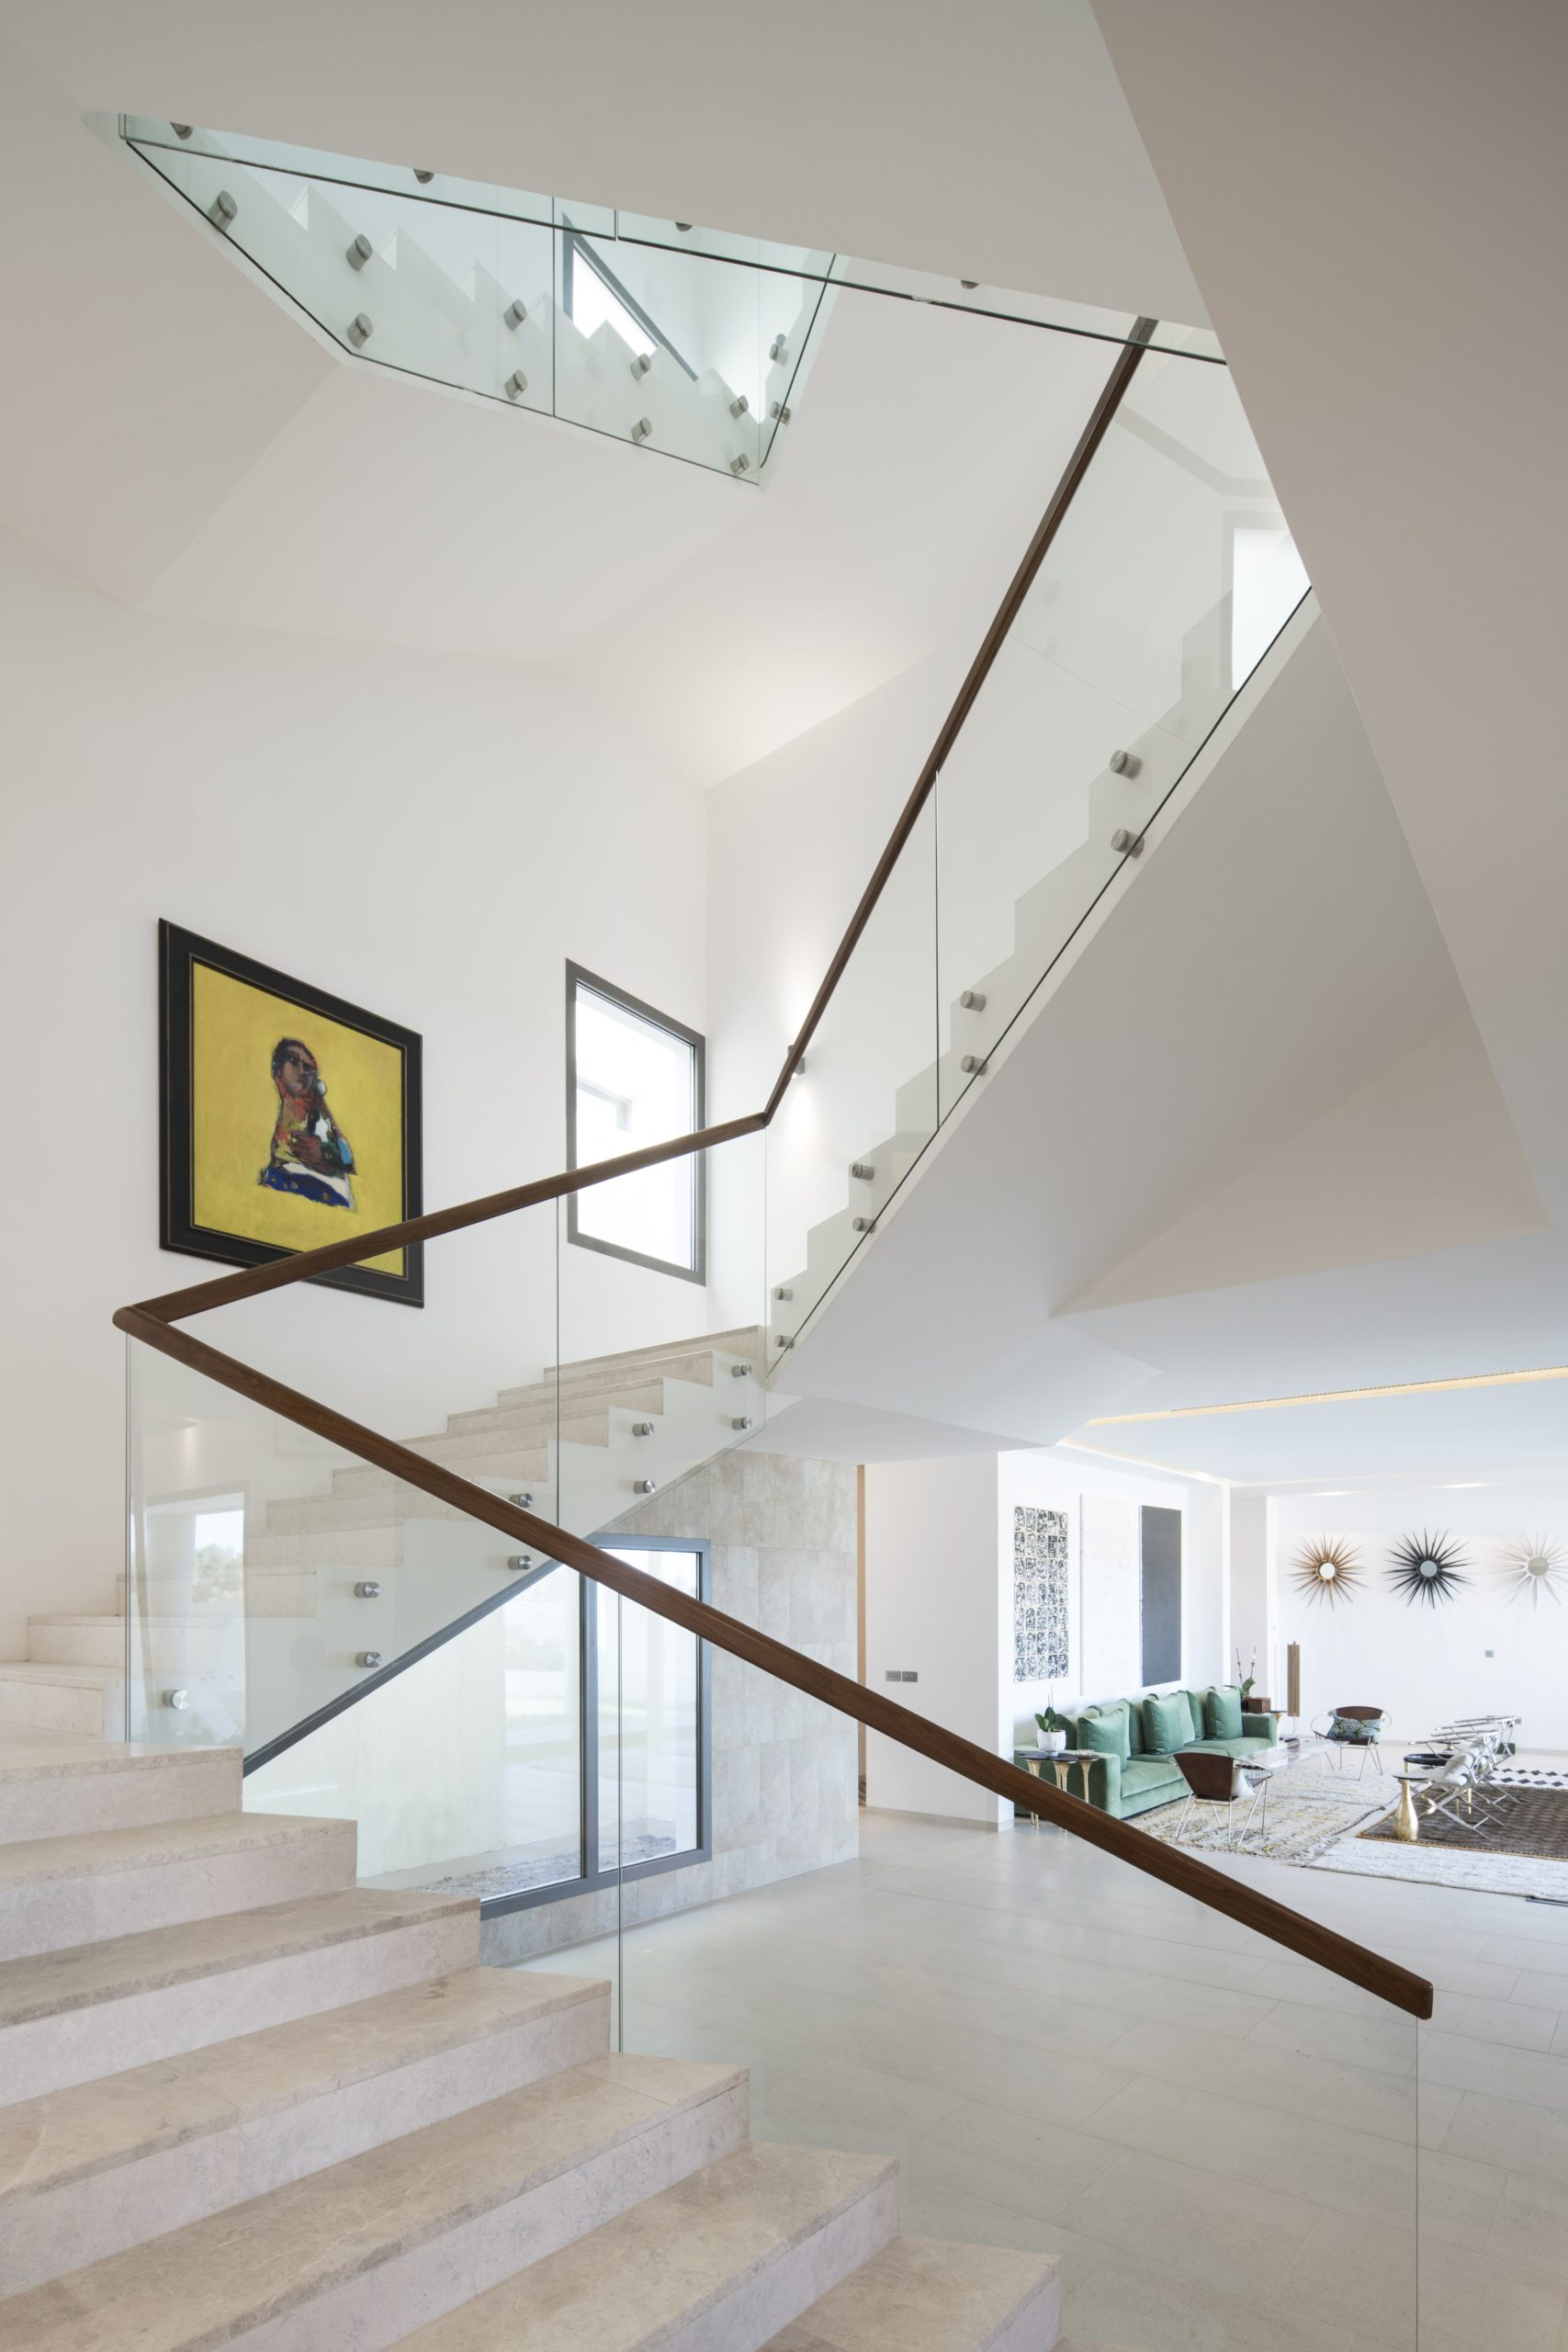 This is a look at the staircase that has a modern white design and a glass railings.